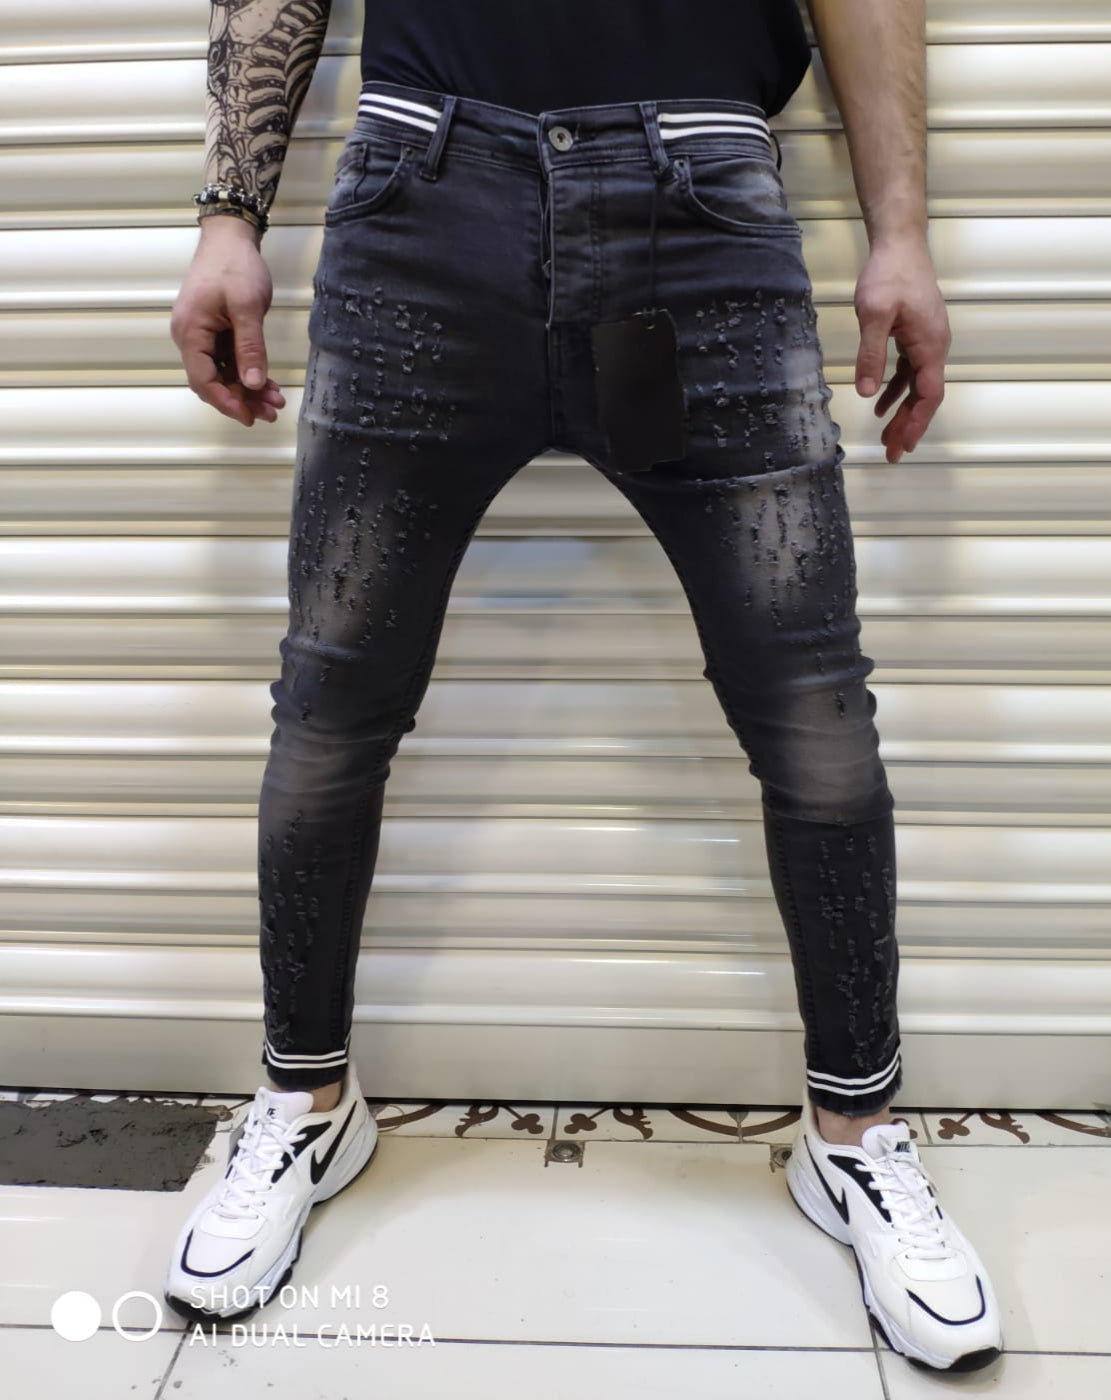 https://groovemanmusic.com/collections/jeans/products/skinny-jeans-black-ripped